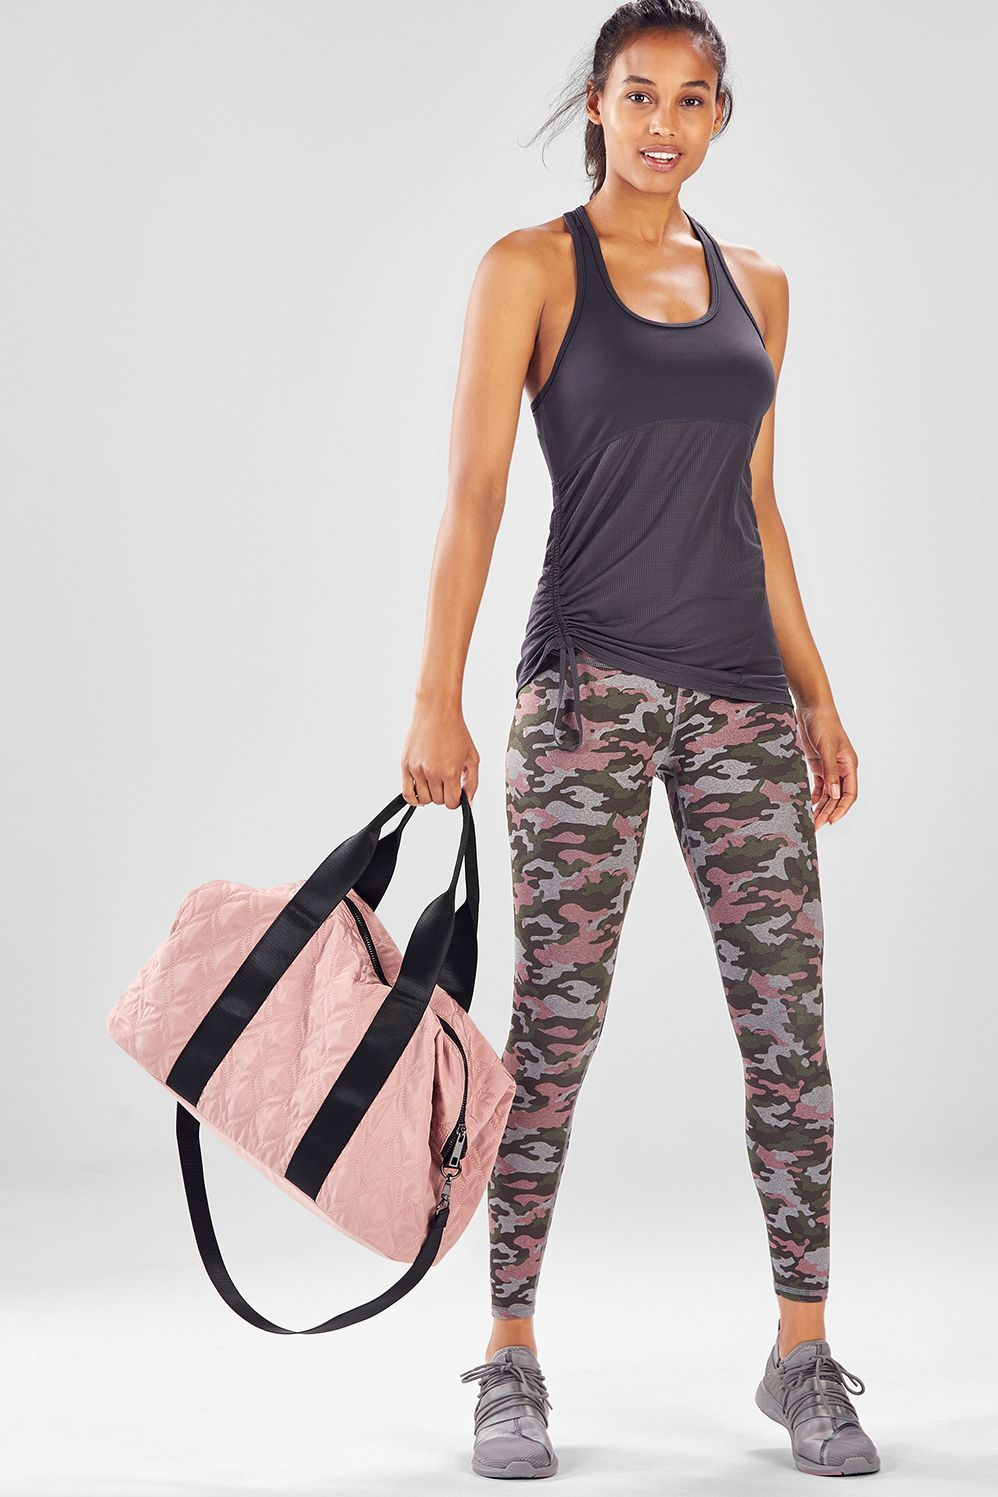 cde6d13bd15 Keep calm and carry on (literally). This outfit comes with all the pieces  you need to take you from workout to day out and everywhere in between.